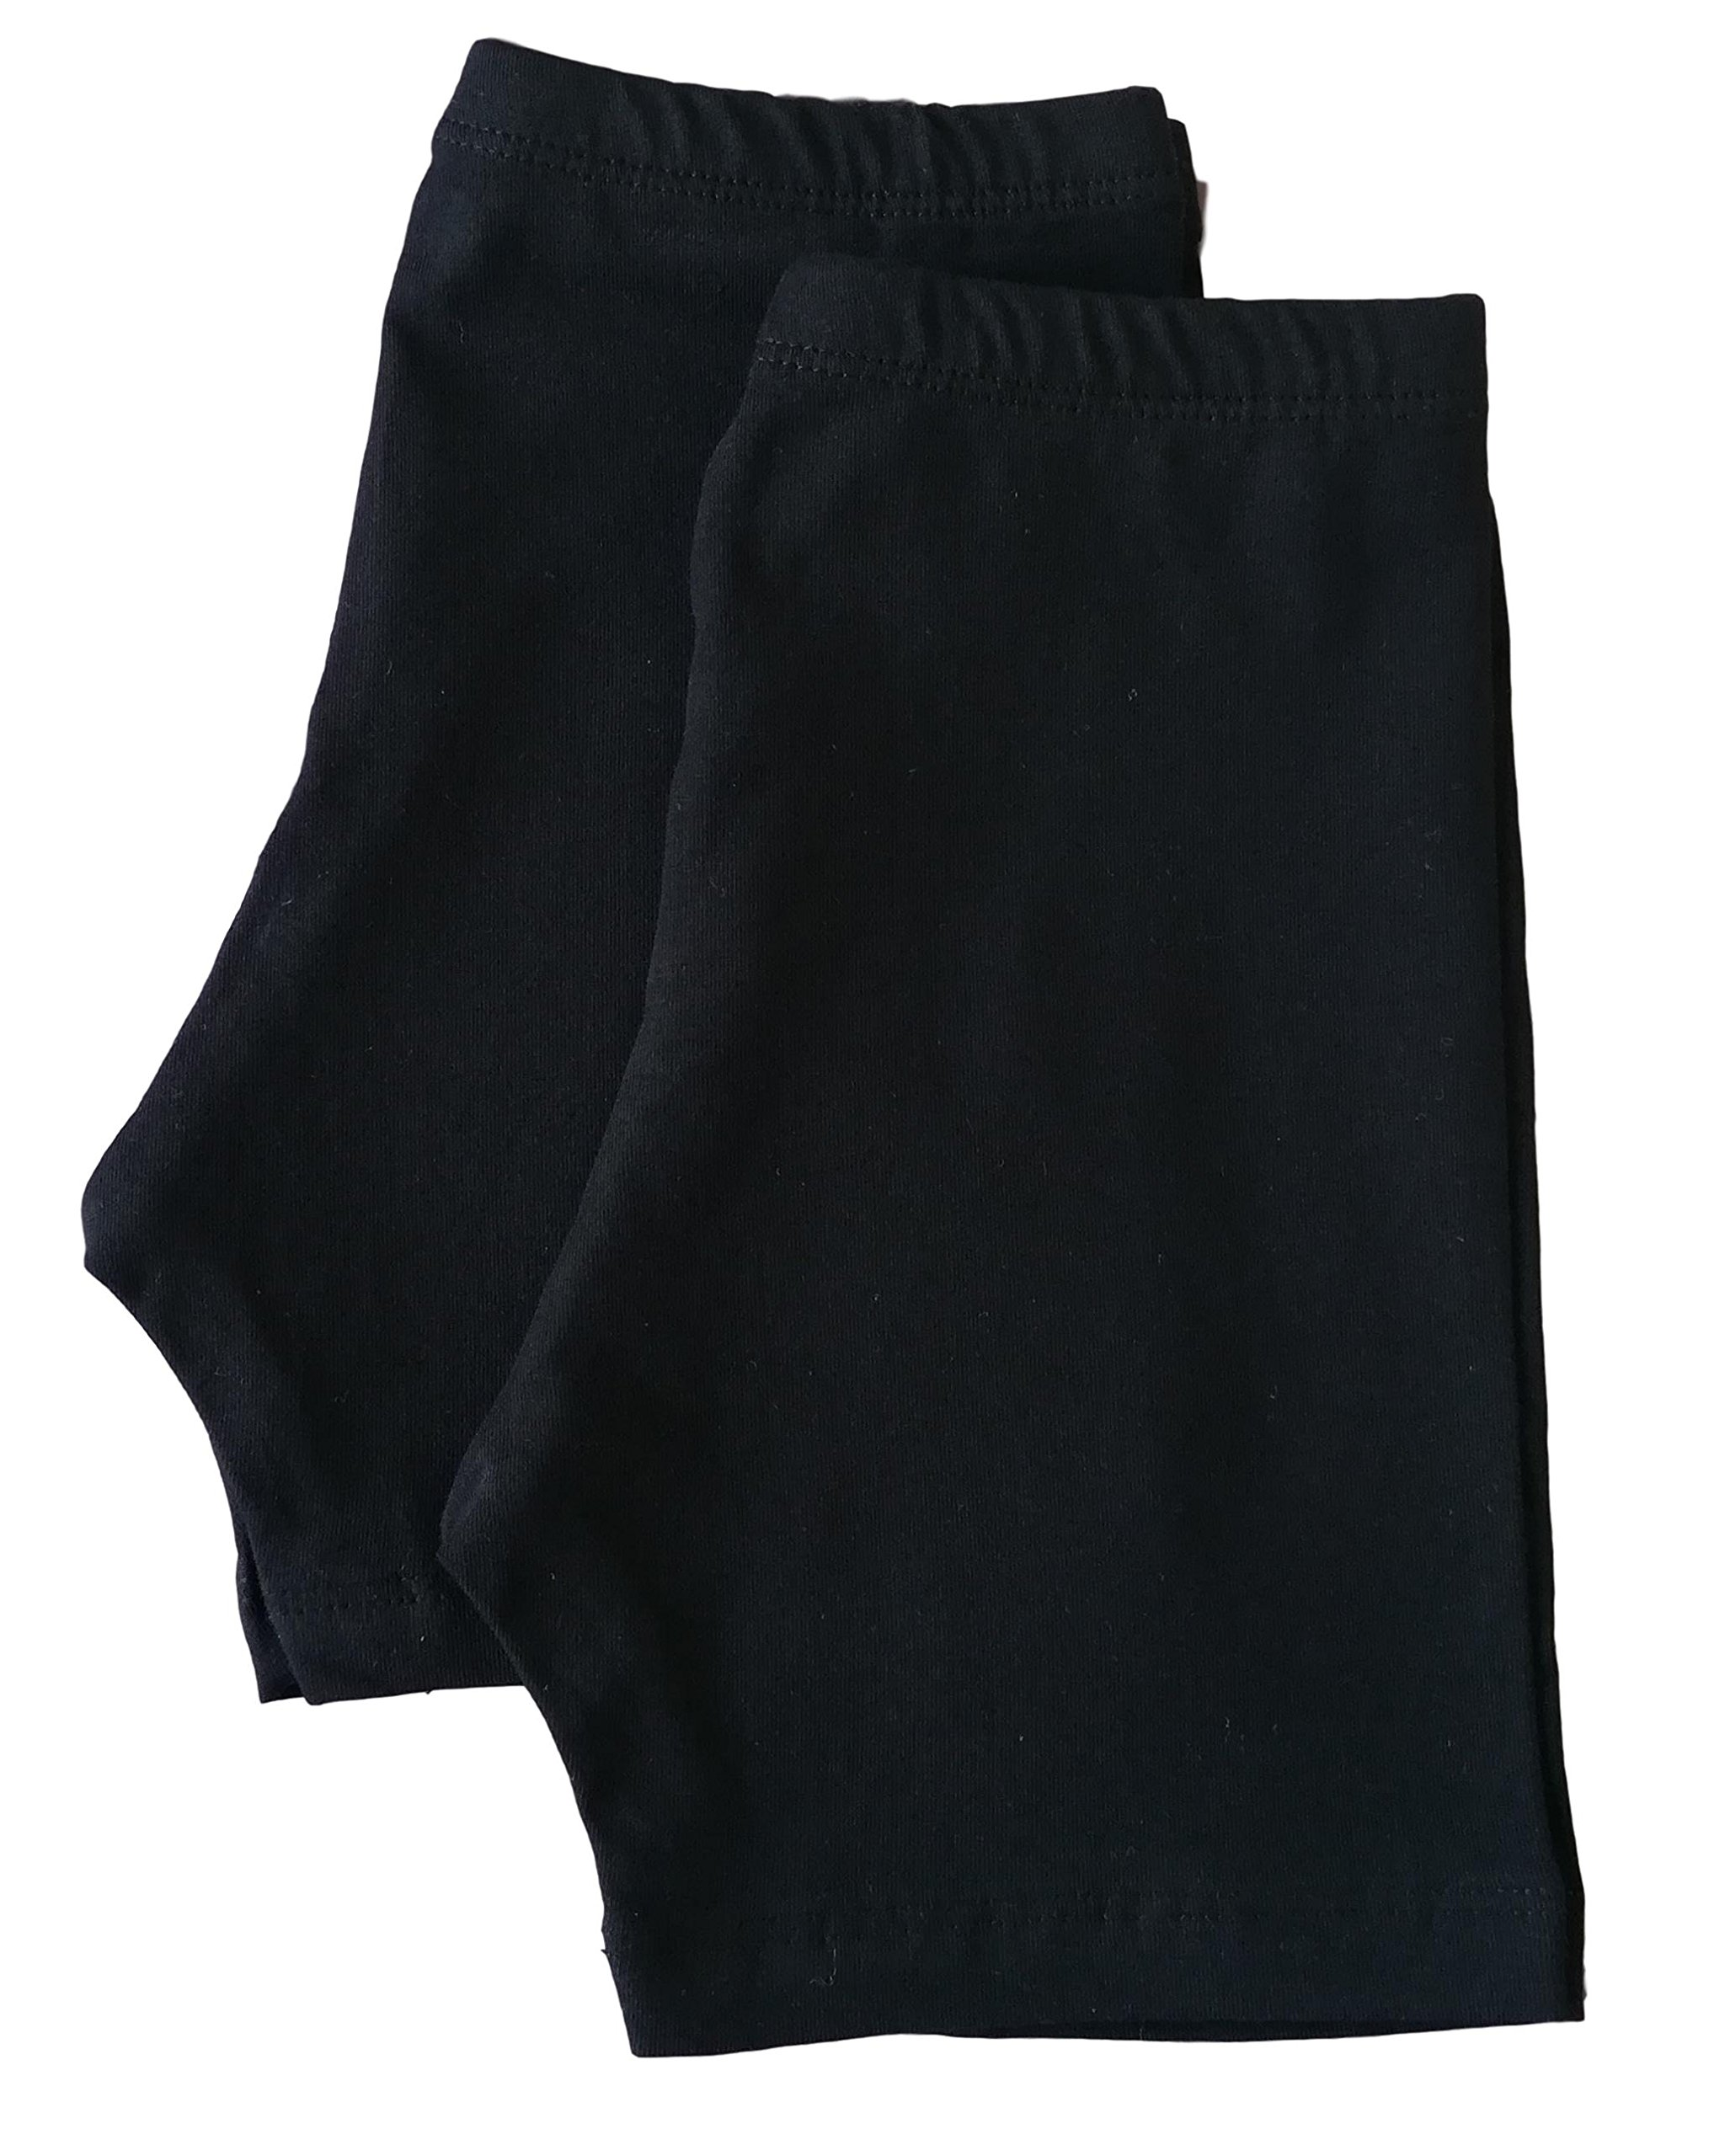 Luxor Egyptian Cotton Girls' Bike Shorts - Big Girls (9-12 Years) - Under Dresses and Sports - Value Pack of 2 Pairs (11-12 Years, Black)